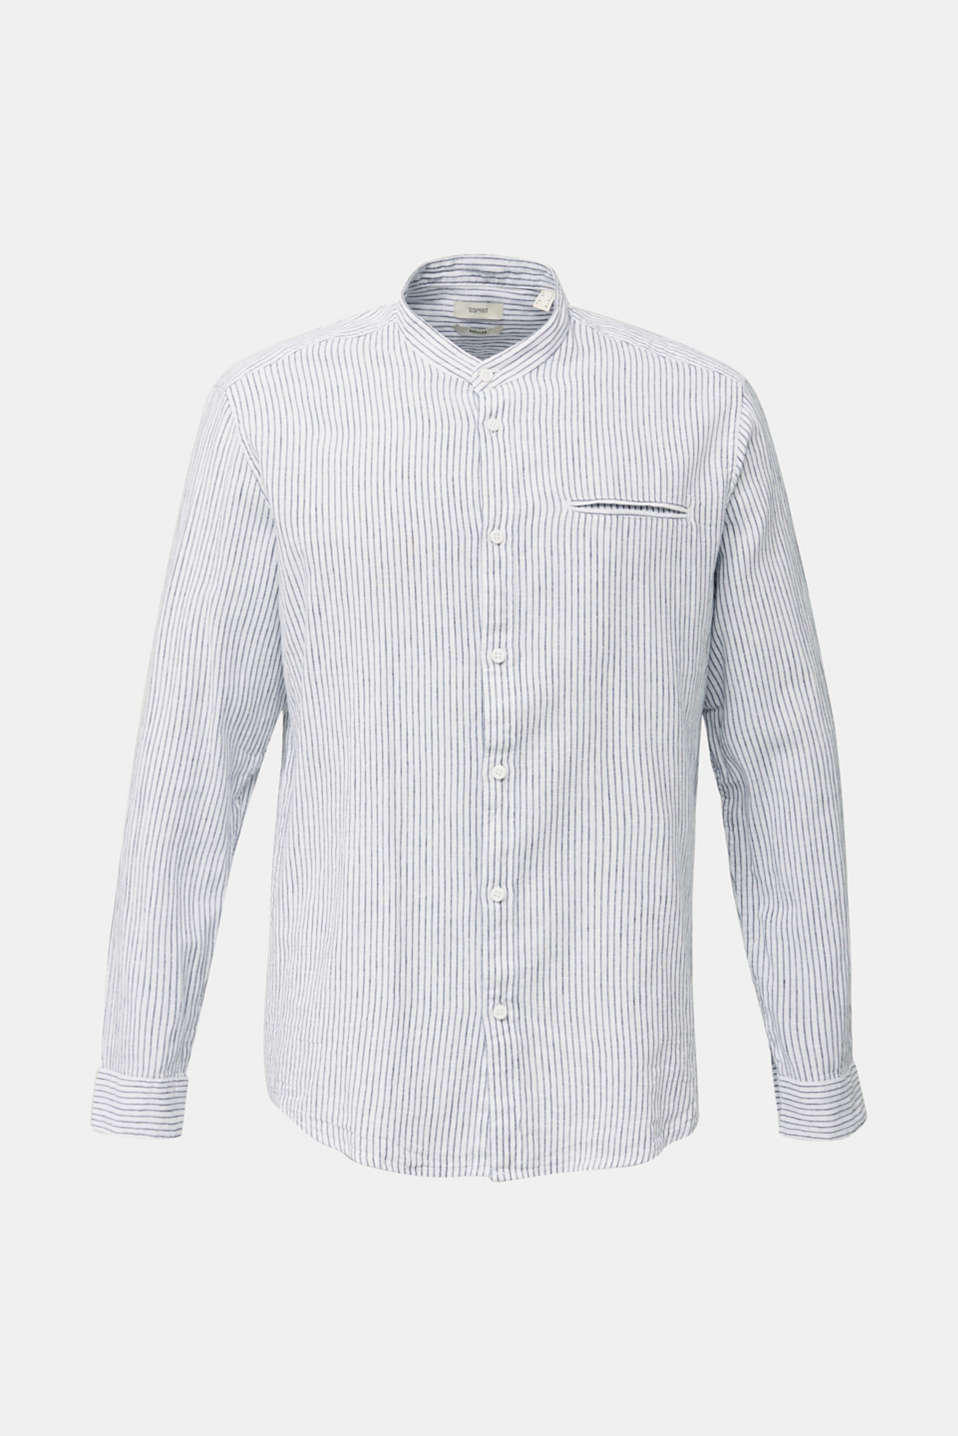 Striped shirt in blended linen, WHITE 3, detail image number 7